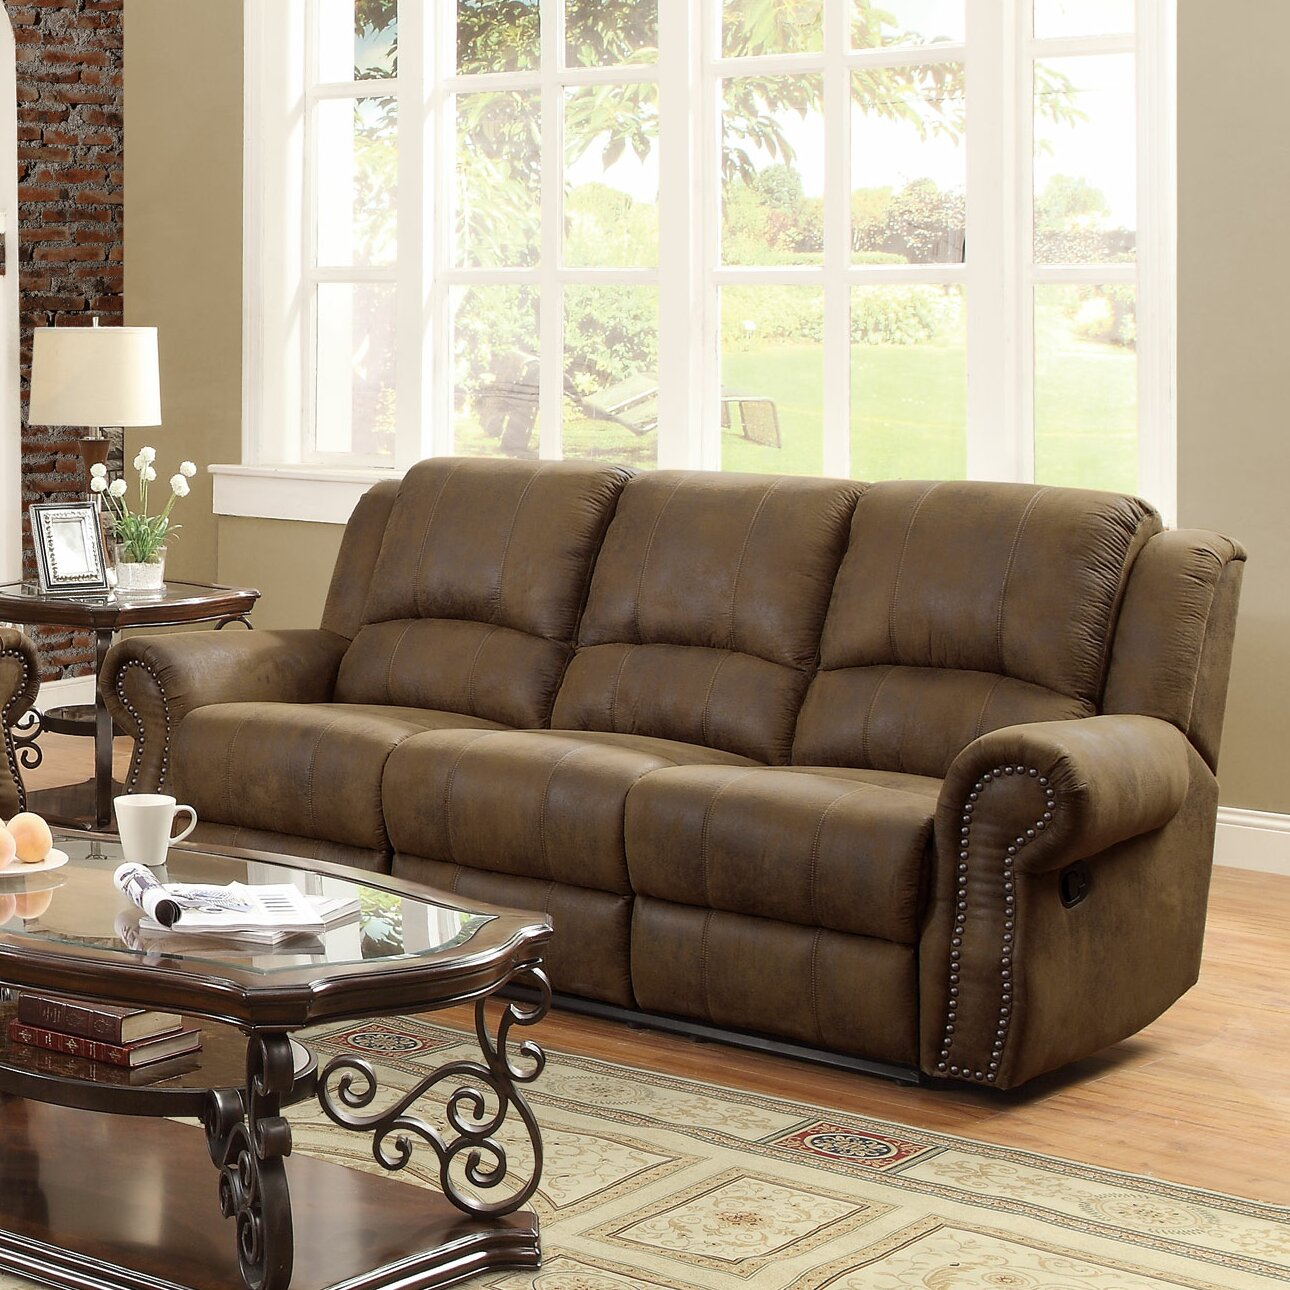 Mcmahon Reclining Sofa - Darby Home Co Mcmahon Reclining Sofa & Reviews Wayfair